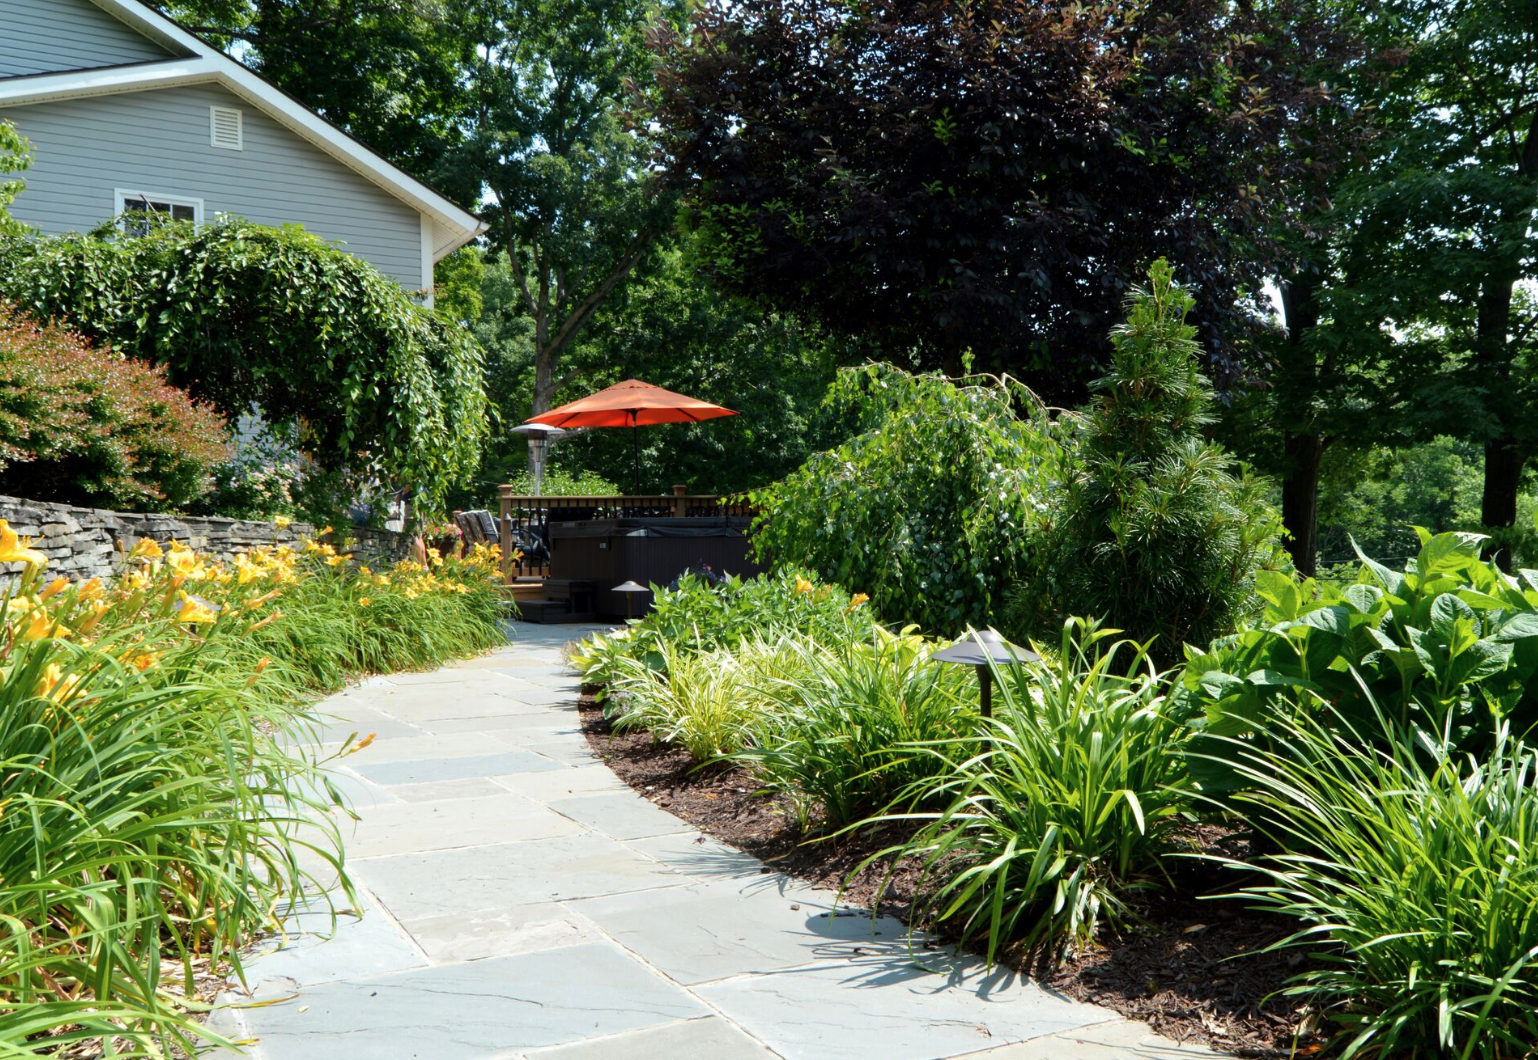 Landscaping ideas in Bethel, New York for walkway and plantings